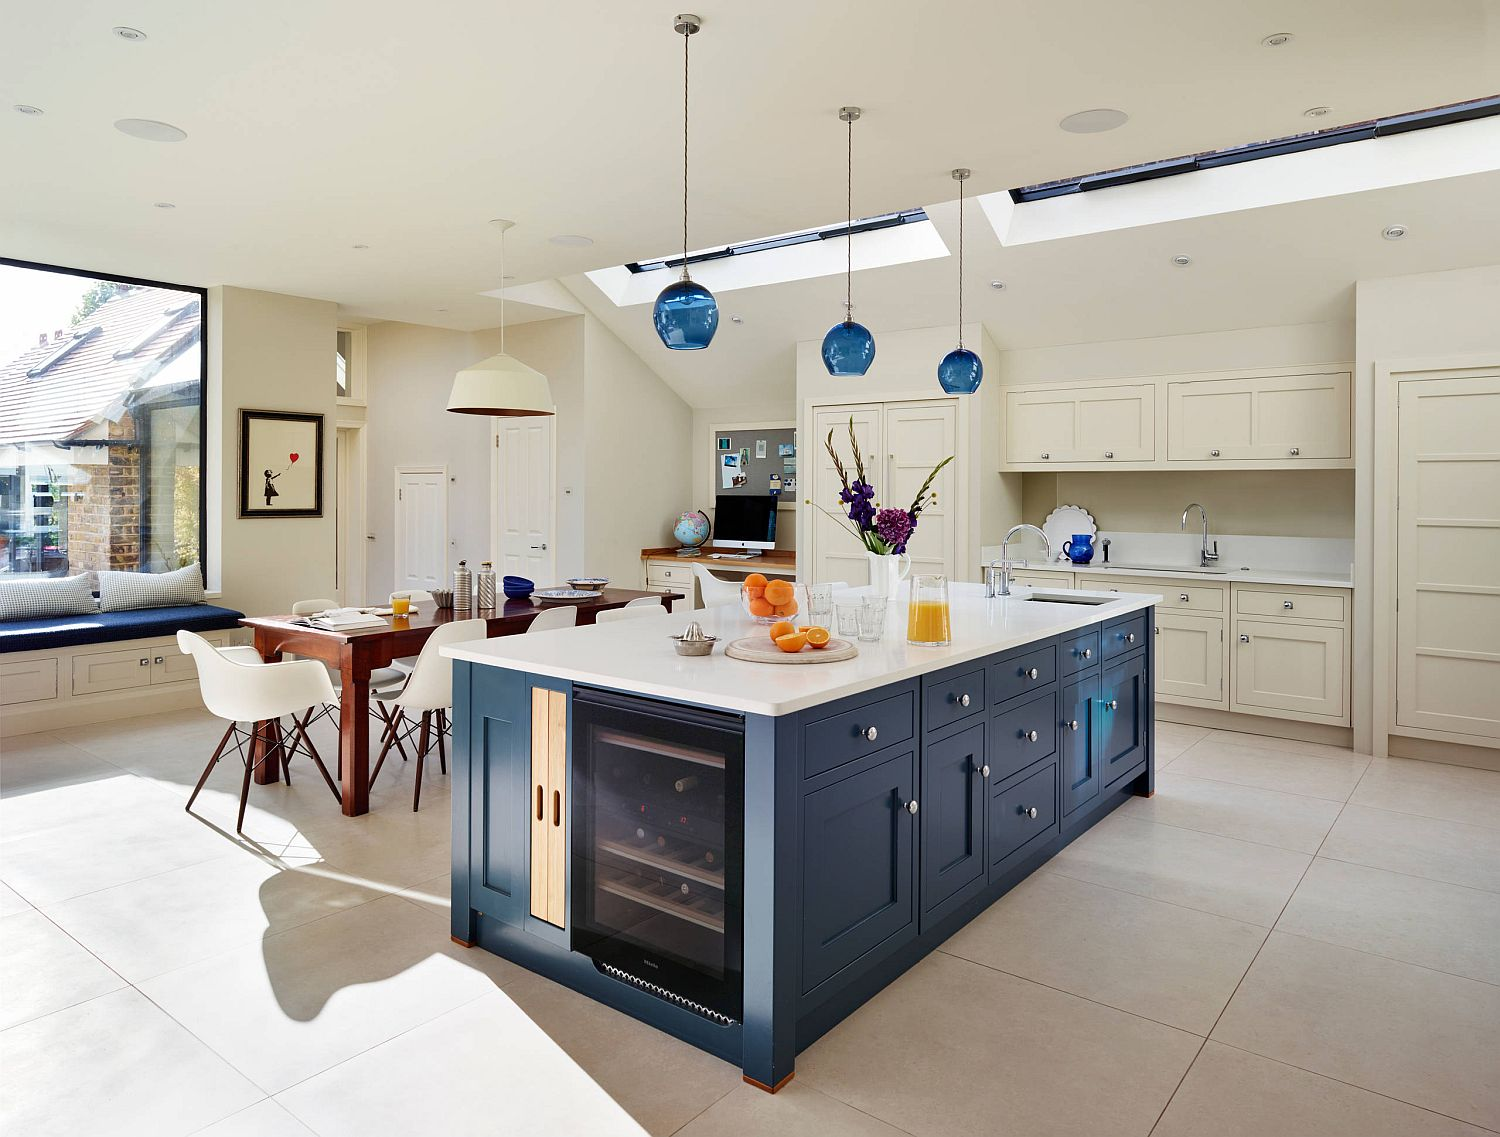 Kitchen-in-white-with-blue-island-that-features-wine-storage-space-blue-pendants-and-skylights